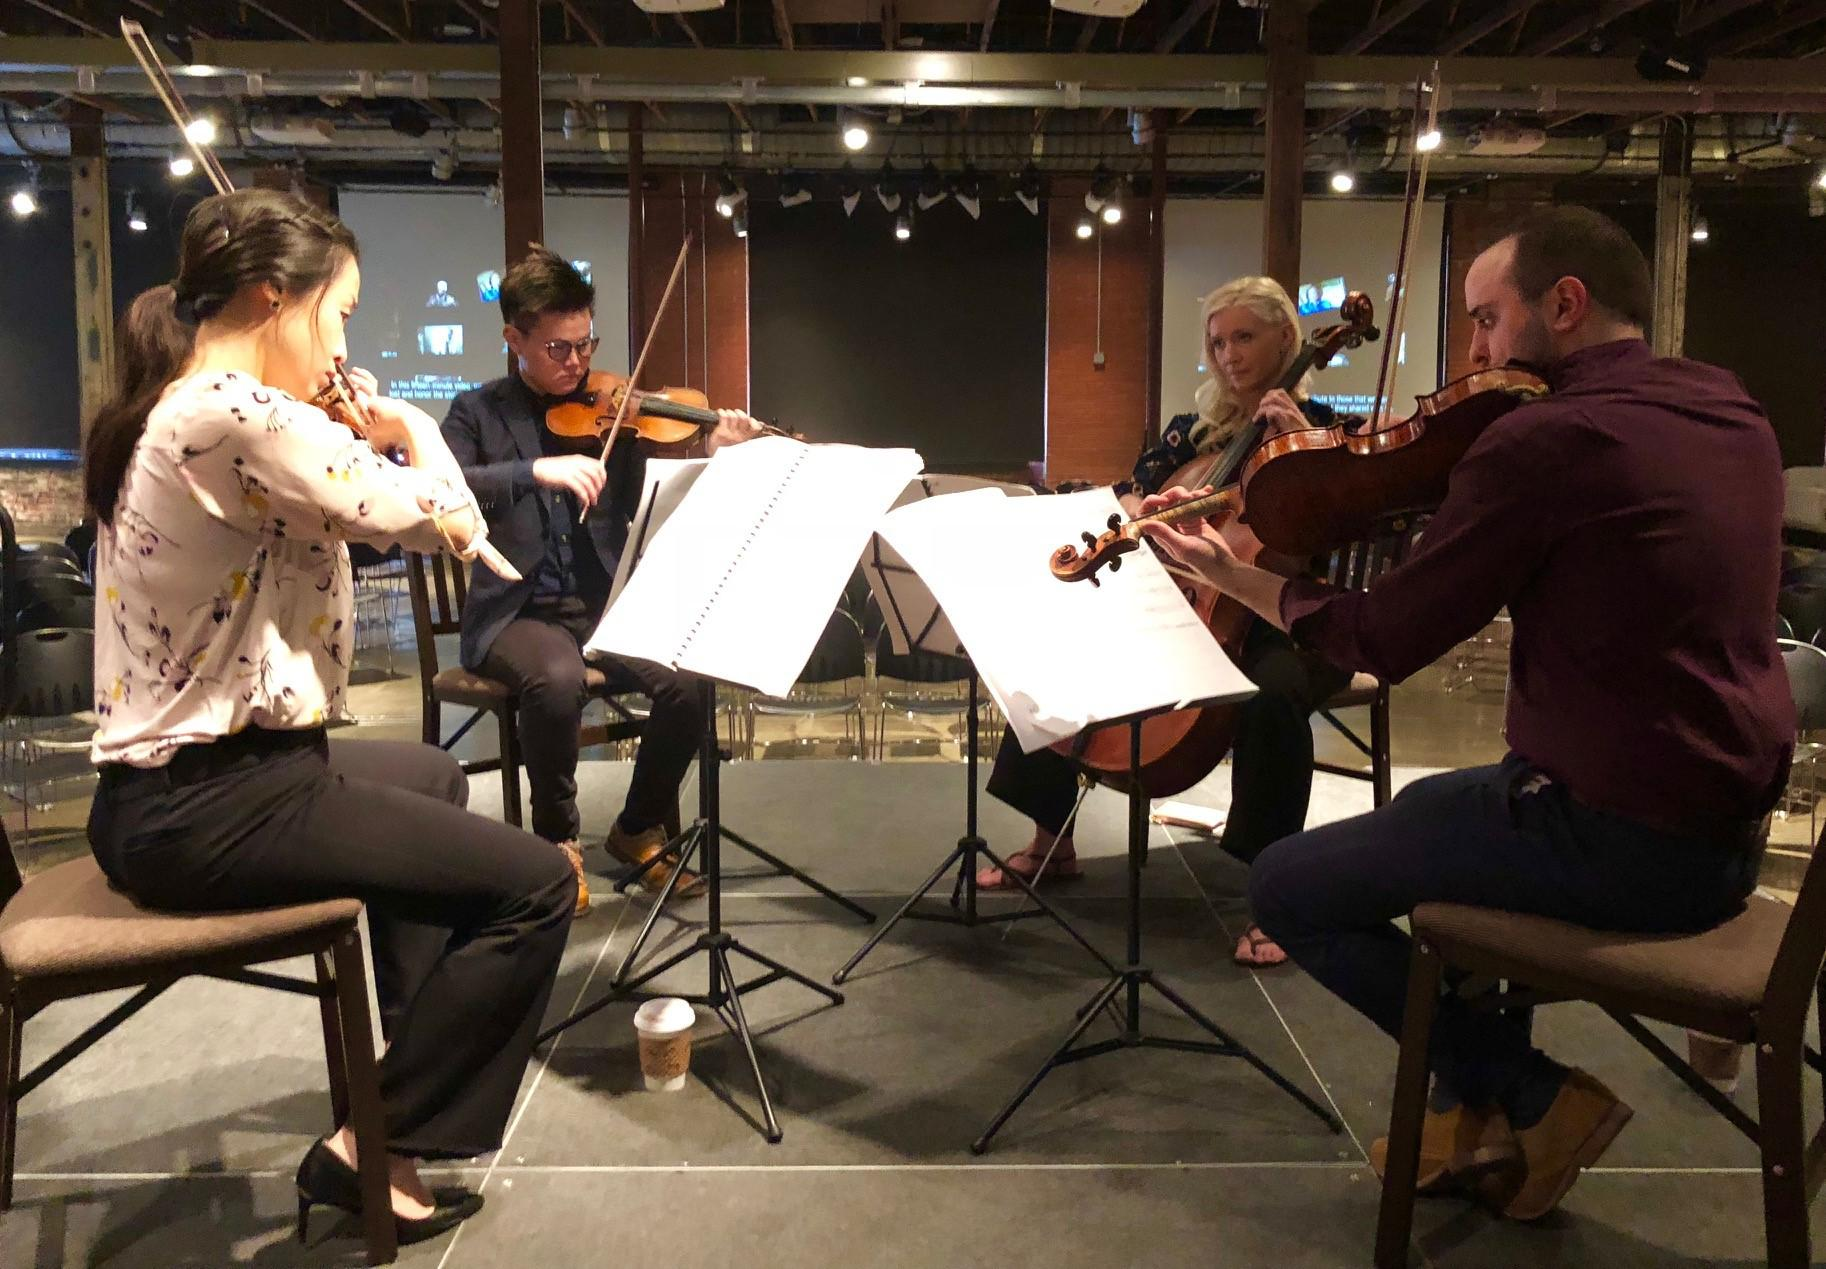 """The Julius Quartet, the Peak Fellowship Ensemble-in-Residence at SMU's Meadows School of the Arts, performed the composition, """"The Sixth Floor,"""" on Presidents Day at The Sixth Floor Museum at Dealey Plaza. From left: violinists Hyun Jeong Helen Lee and David Do, cellist Brooke Scholl and violist John Batchelder. Photo: Stella M. Chávez / KERA News"""